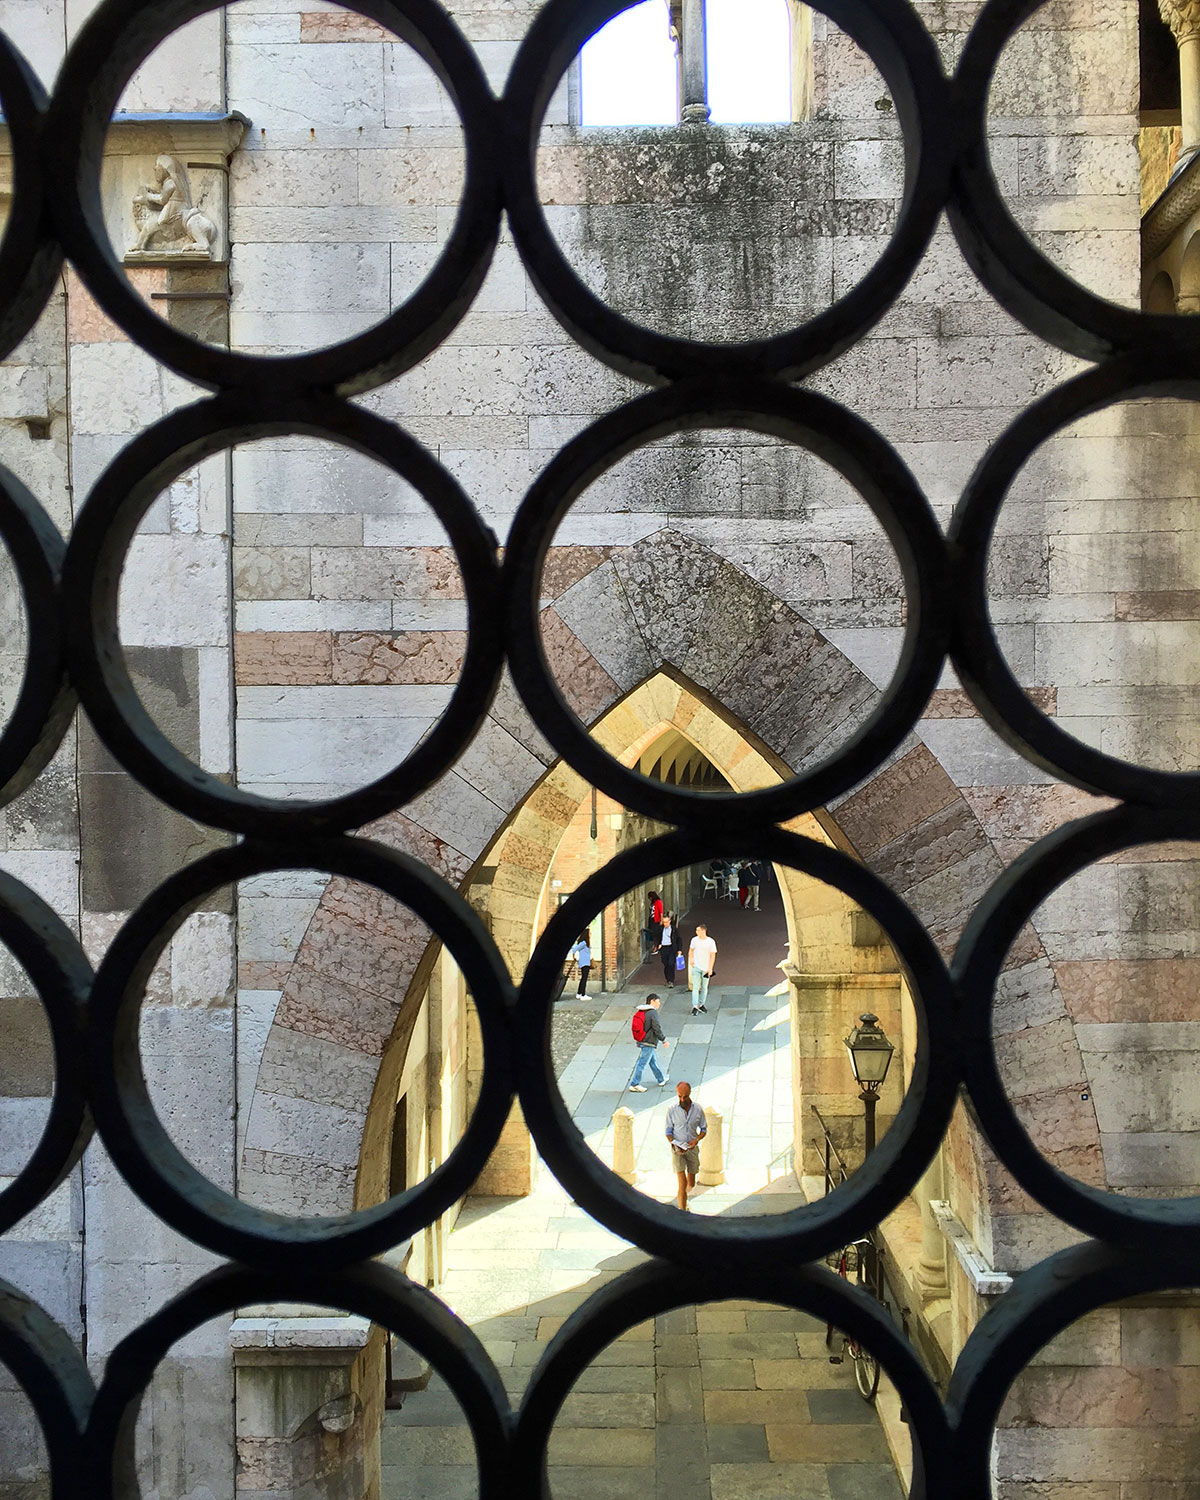 Gothic arches inserted between the bell tower and duomo to prevent collapse.